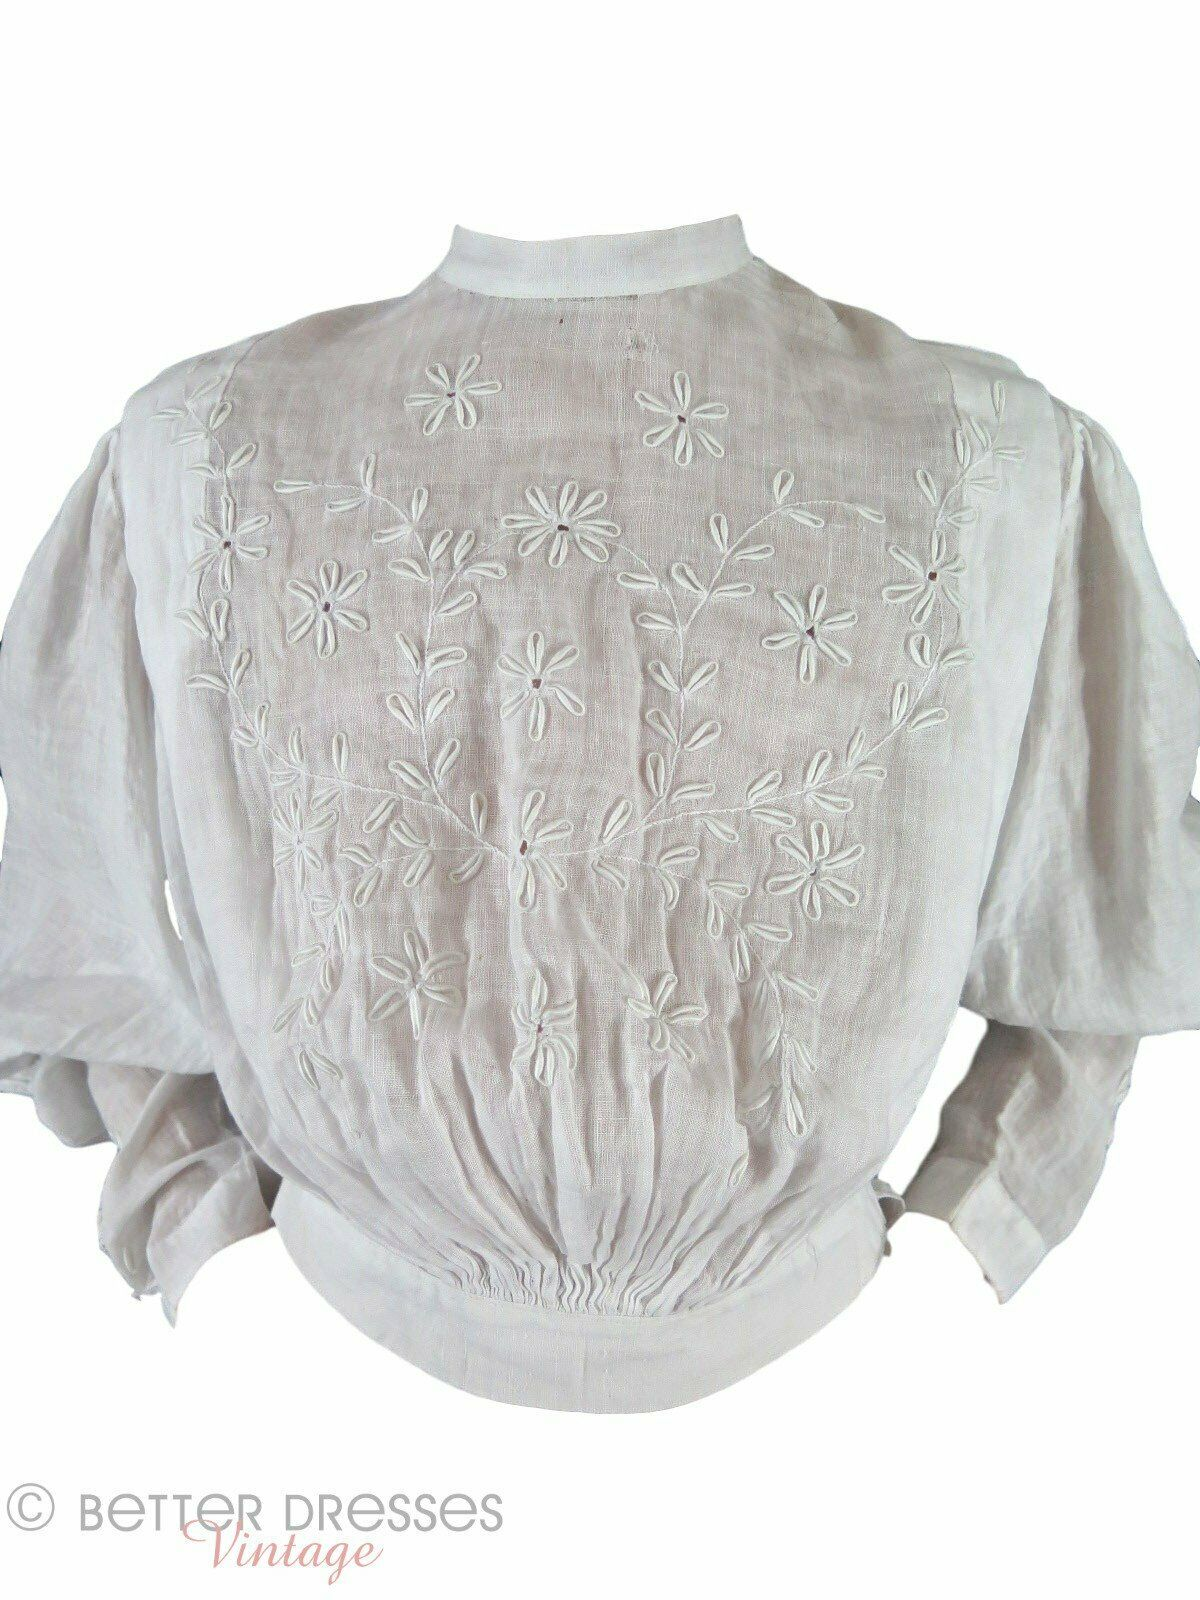 Antique Embroidered Blouse - xs, sm - image 3